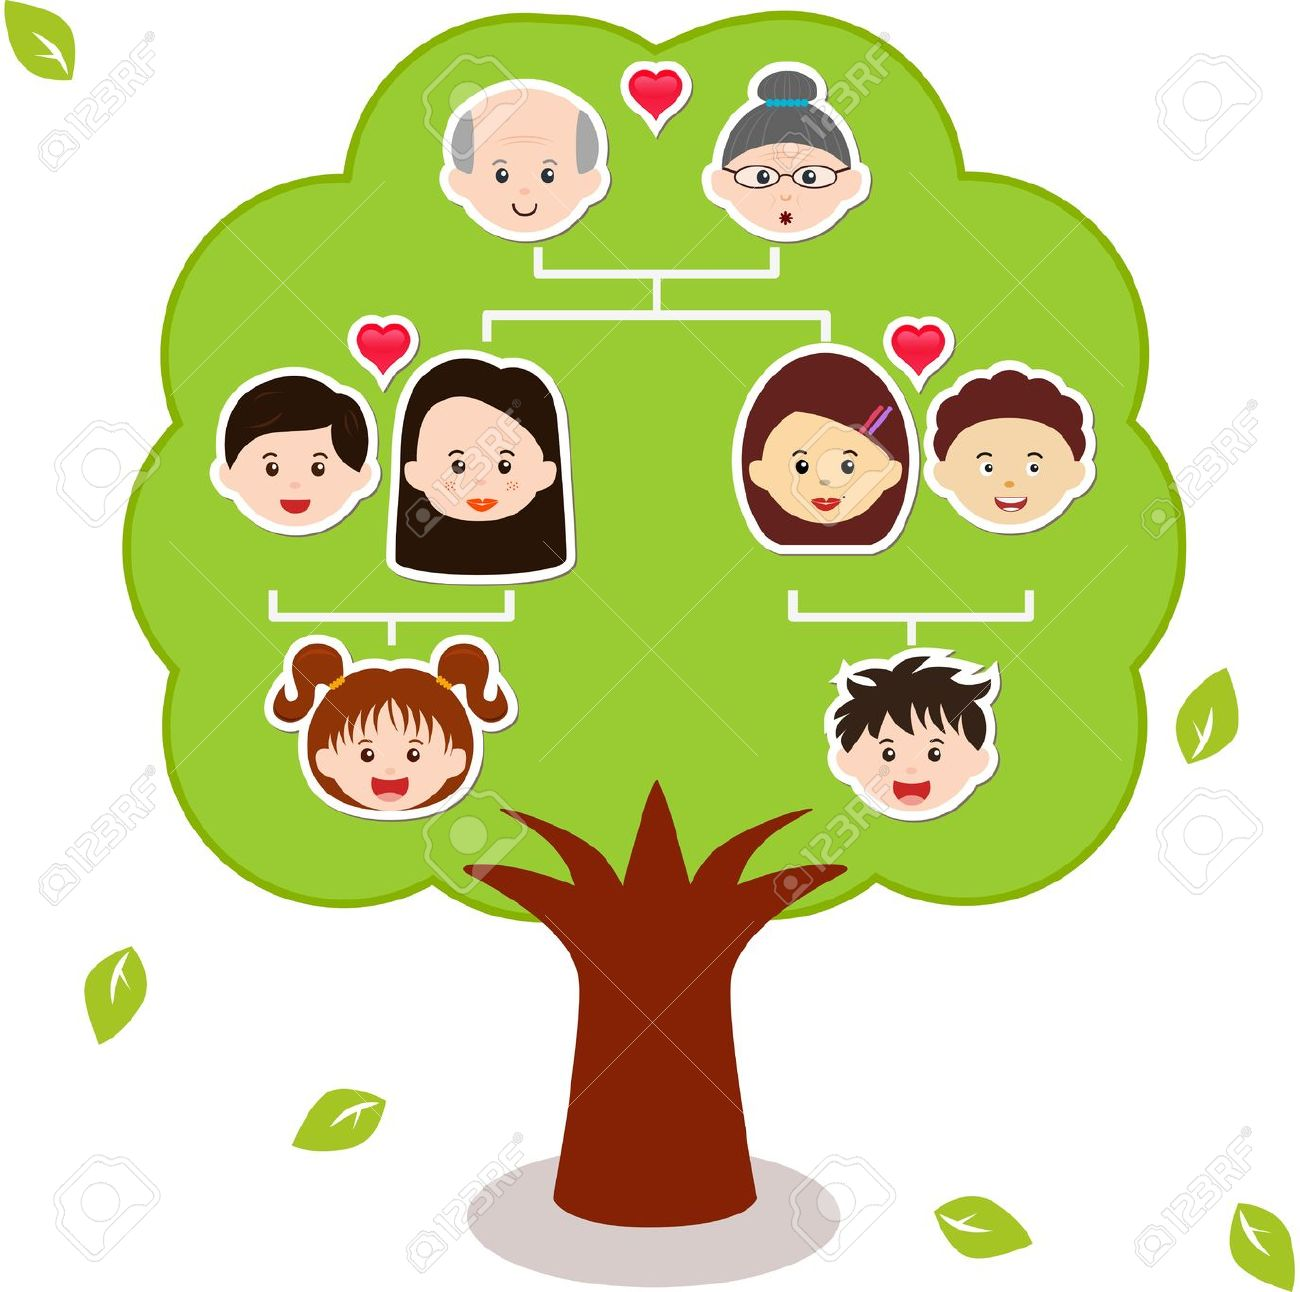 Chain clipart family. Cliparts free download clip